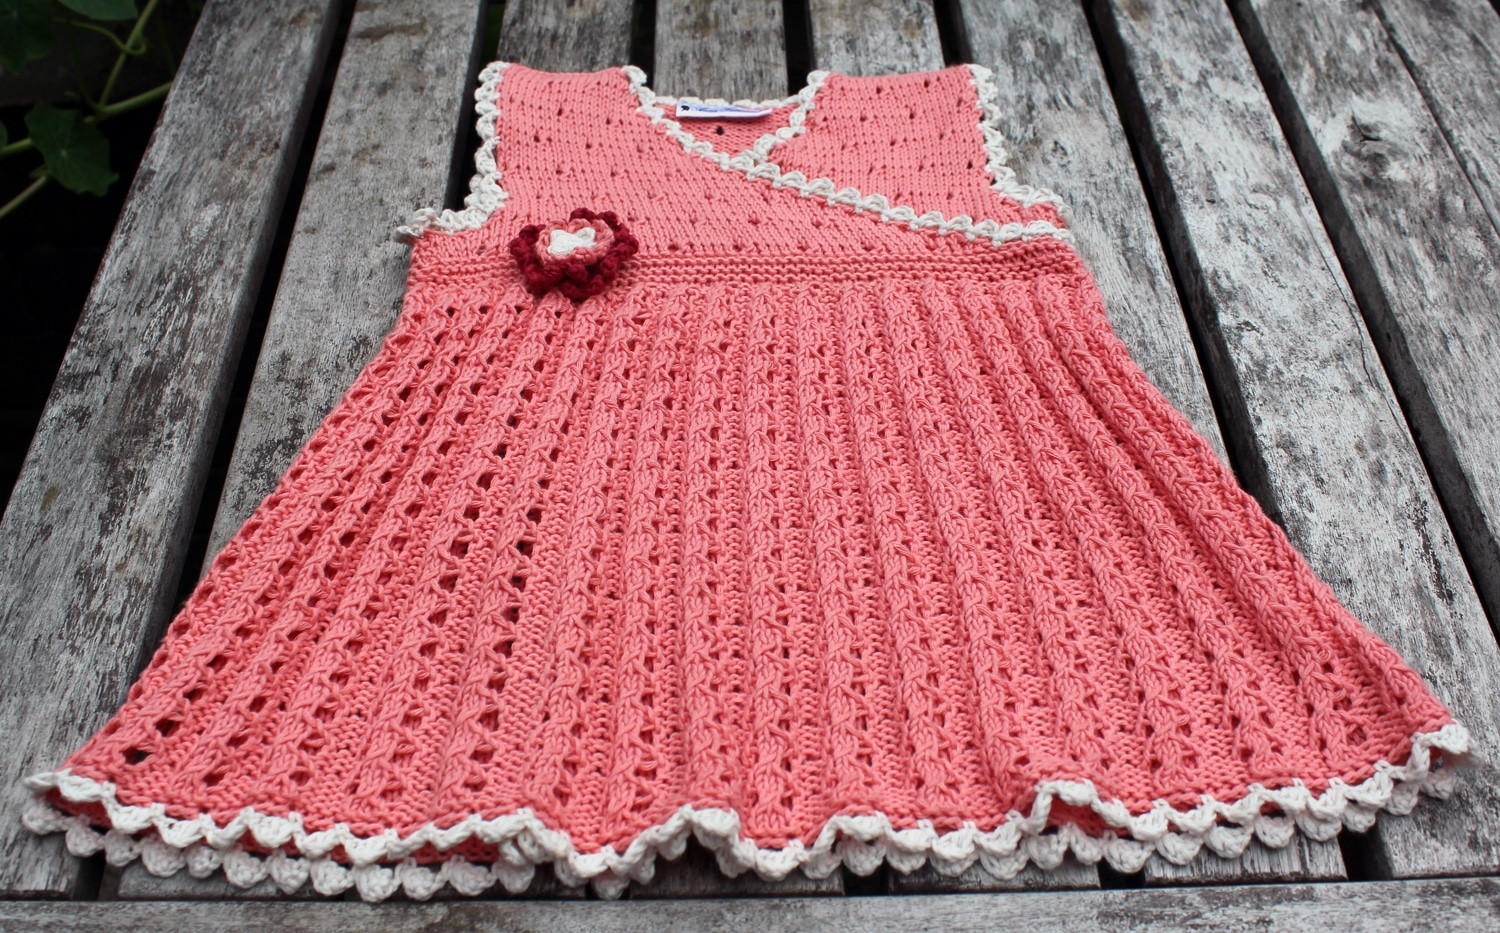 Awesome Crochet and Knitting Patterns Wmperm for Free Knitting and Crochet Patterns Of Marvelous 44 Ideas Free Knitting and Crochet Patterns